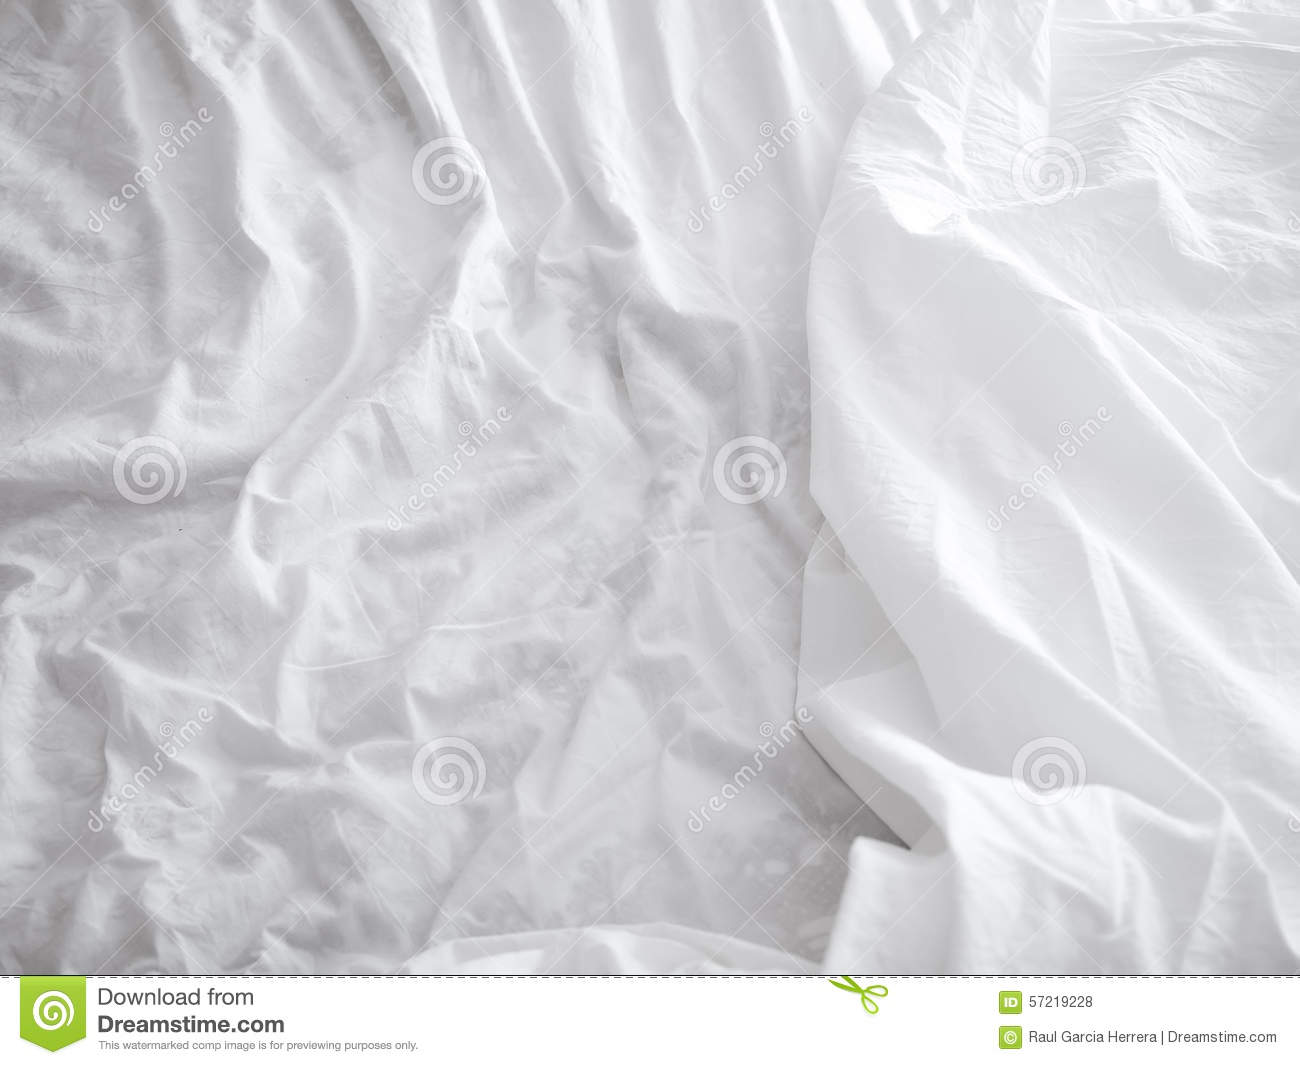 Bed sheets texture bedbathpic with regard to red bed sheet texture - Bed Sheet Texture White Bed Sheets Background And Texture Stock Photo Download